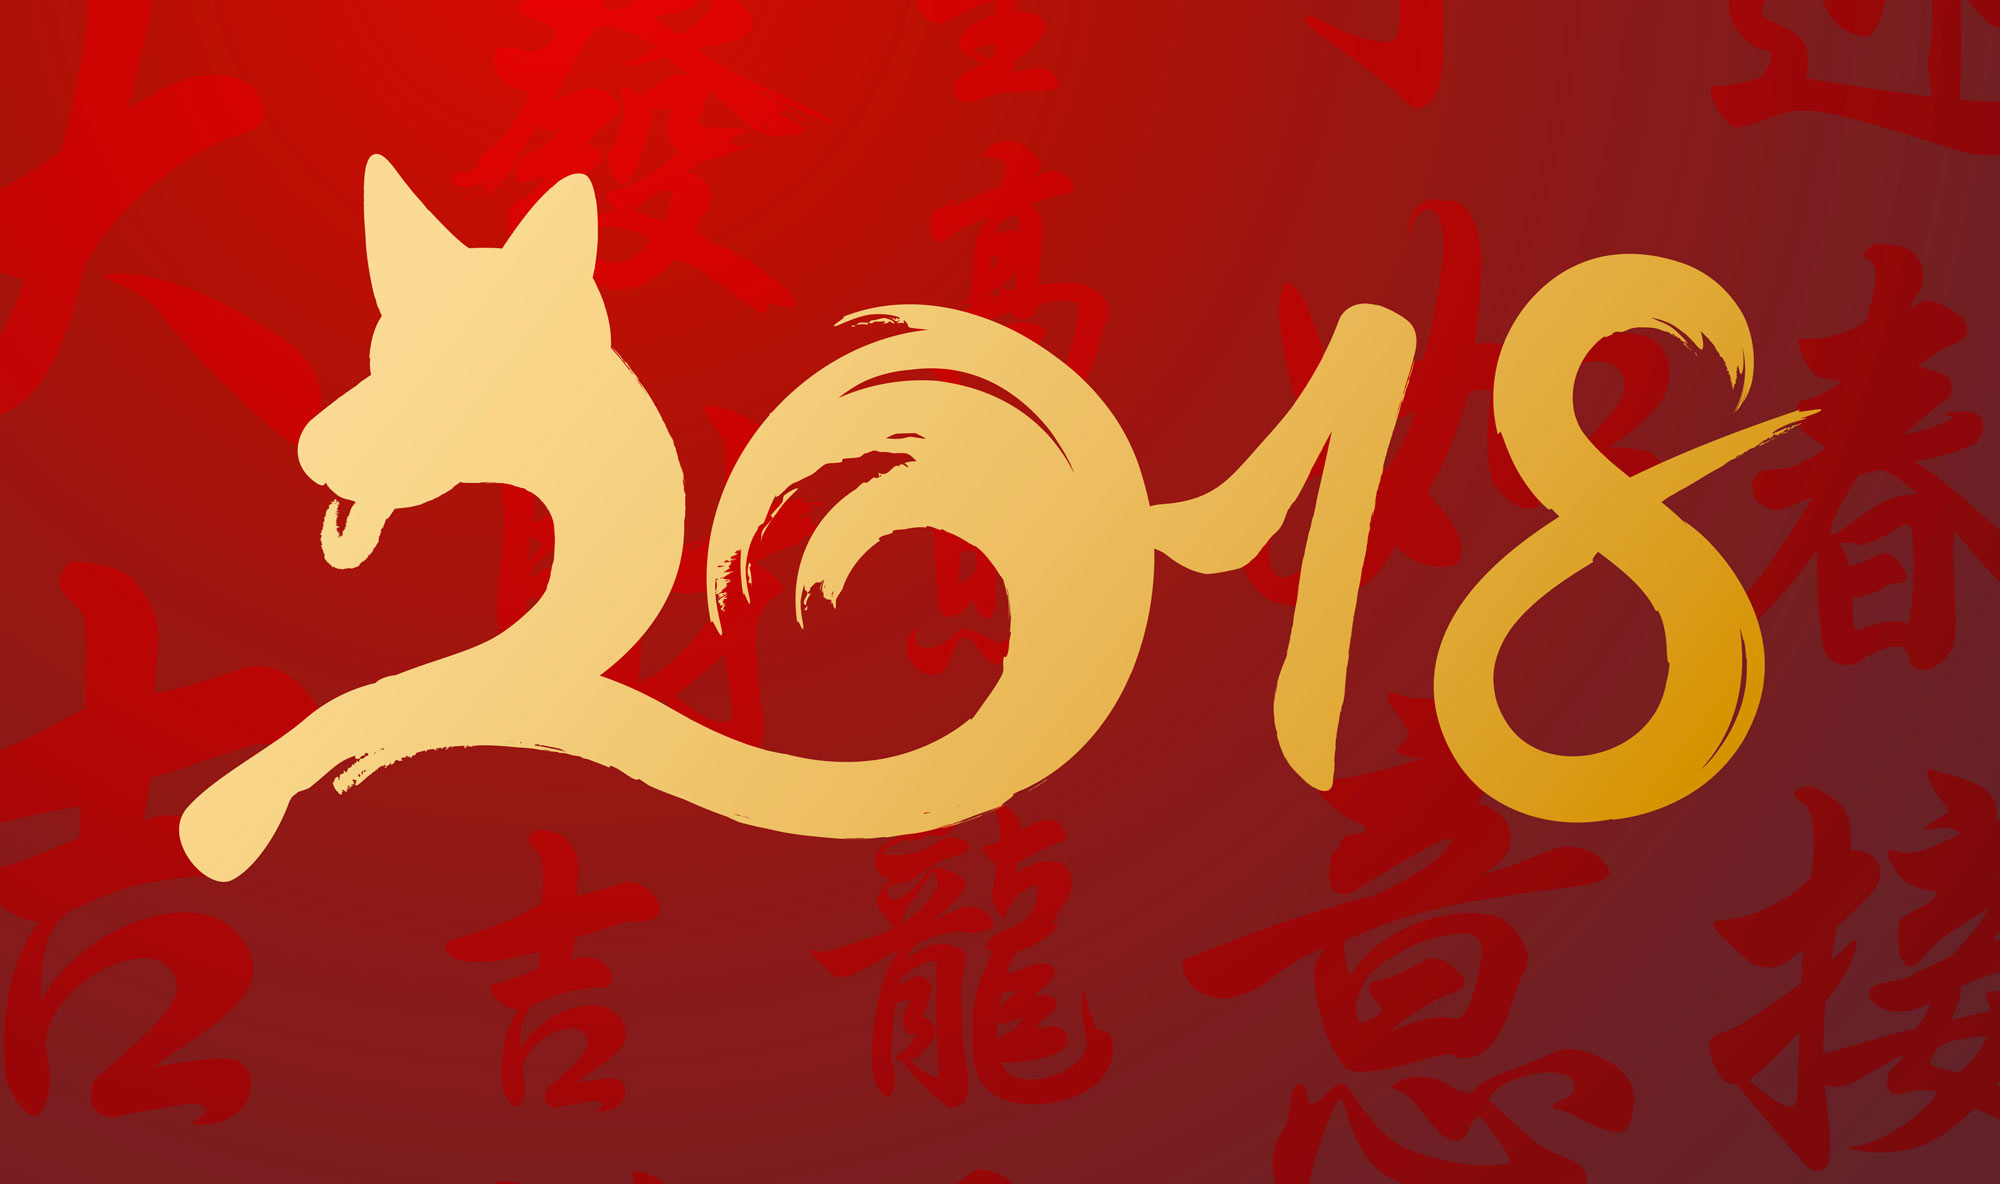 Chinese New Year New Year Red 2000x1184